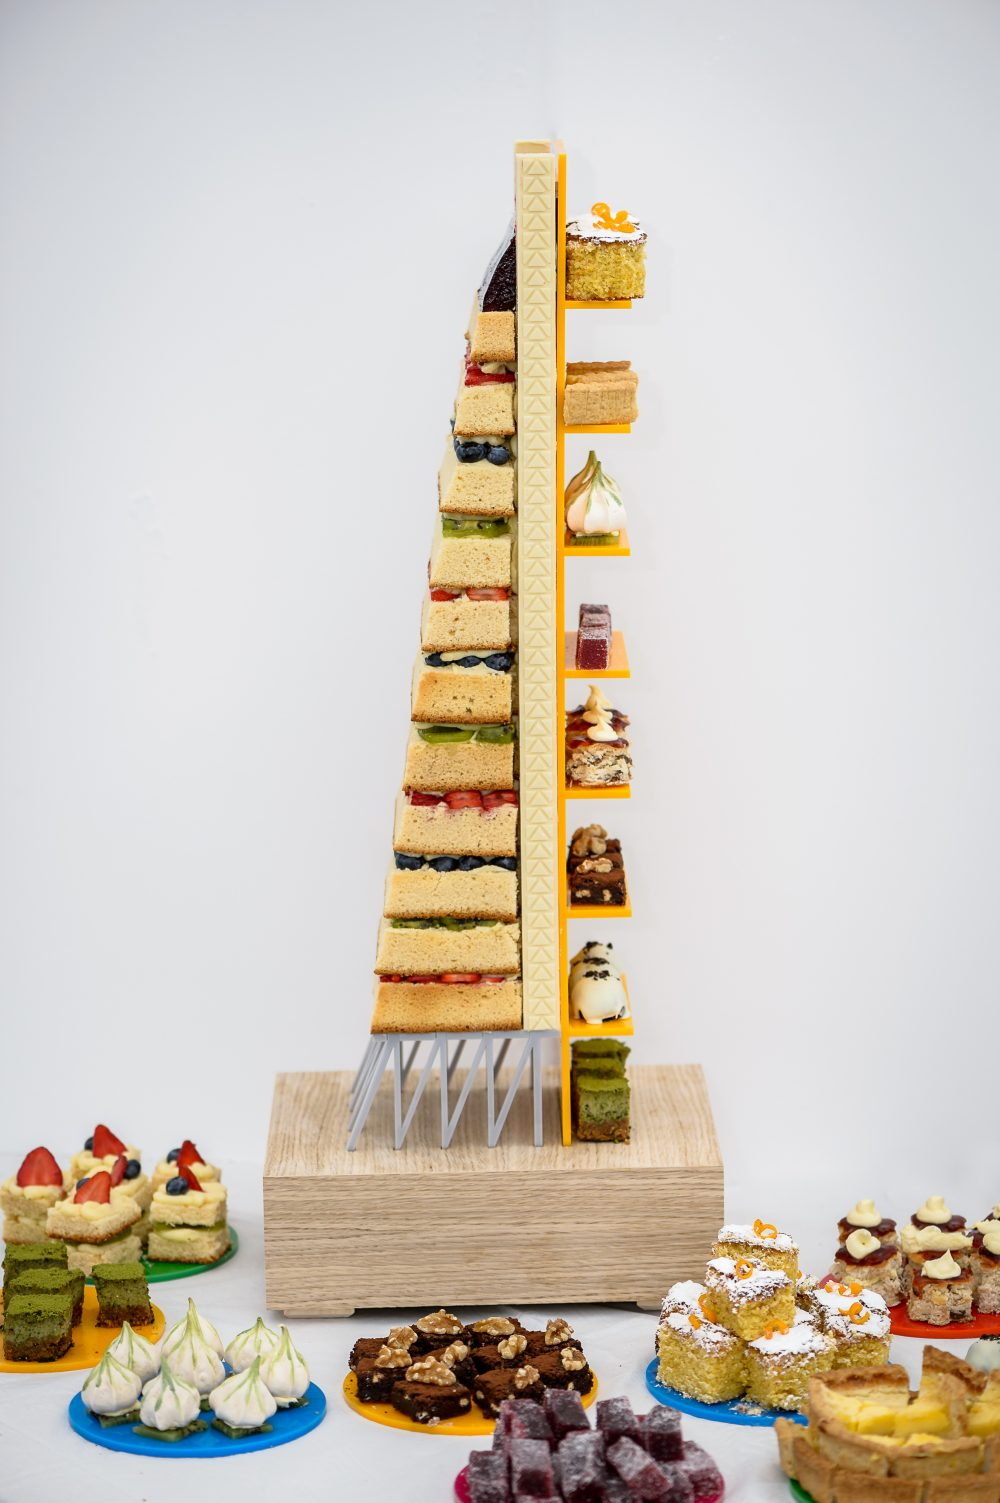 YES WATG's Great Architectural Bake Off 2018 - Leadenhall Building by Rogers Stirk Harbour + Partners © WATG